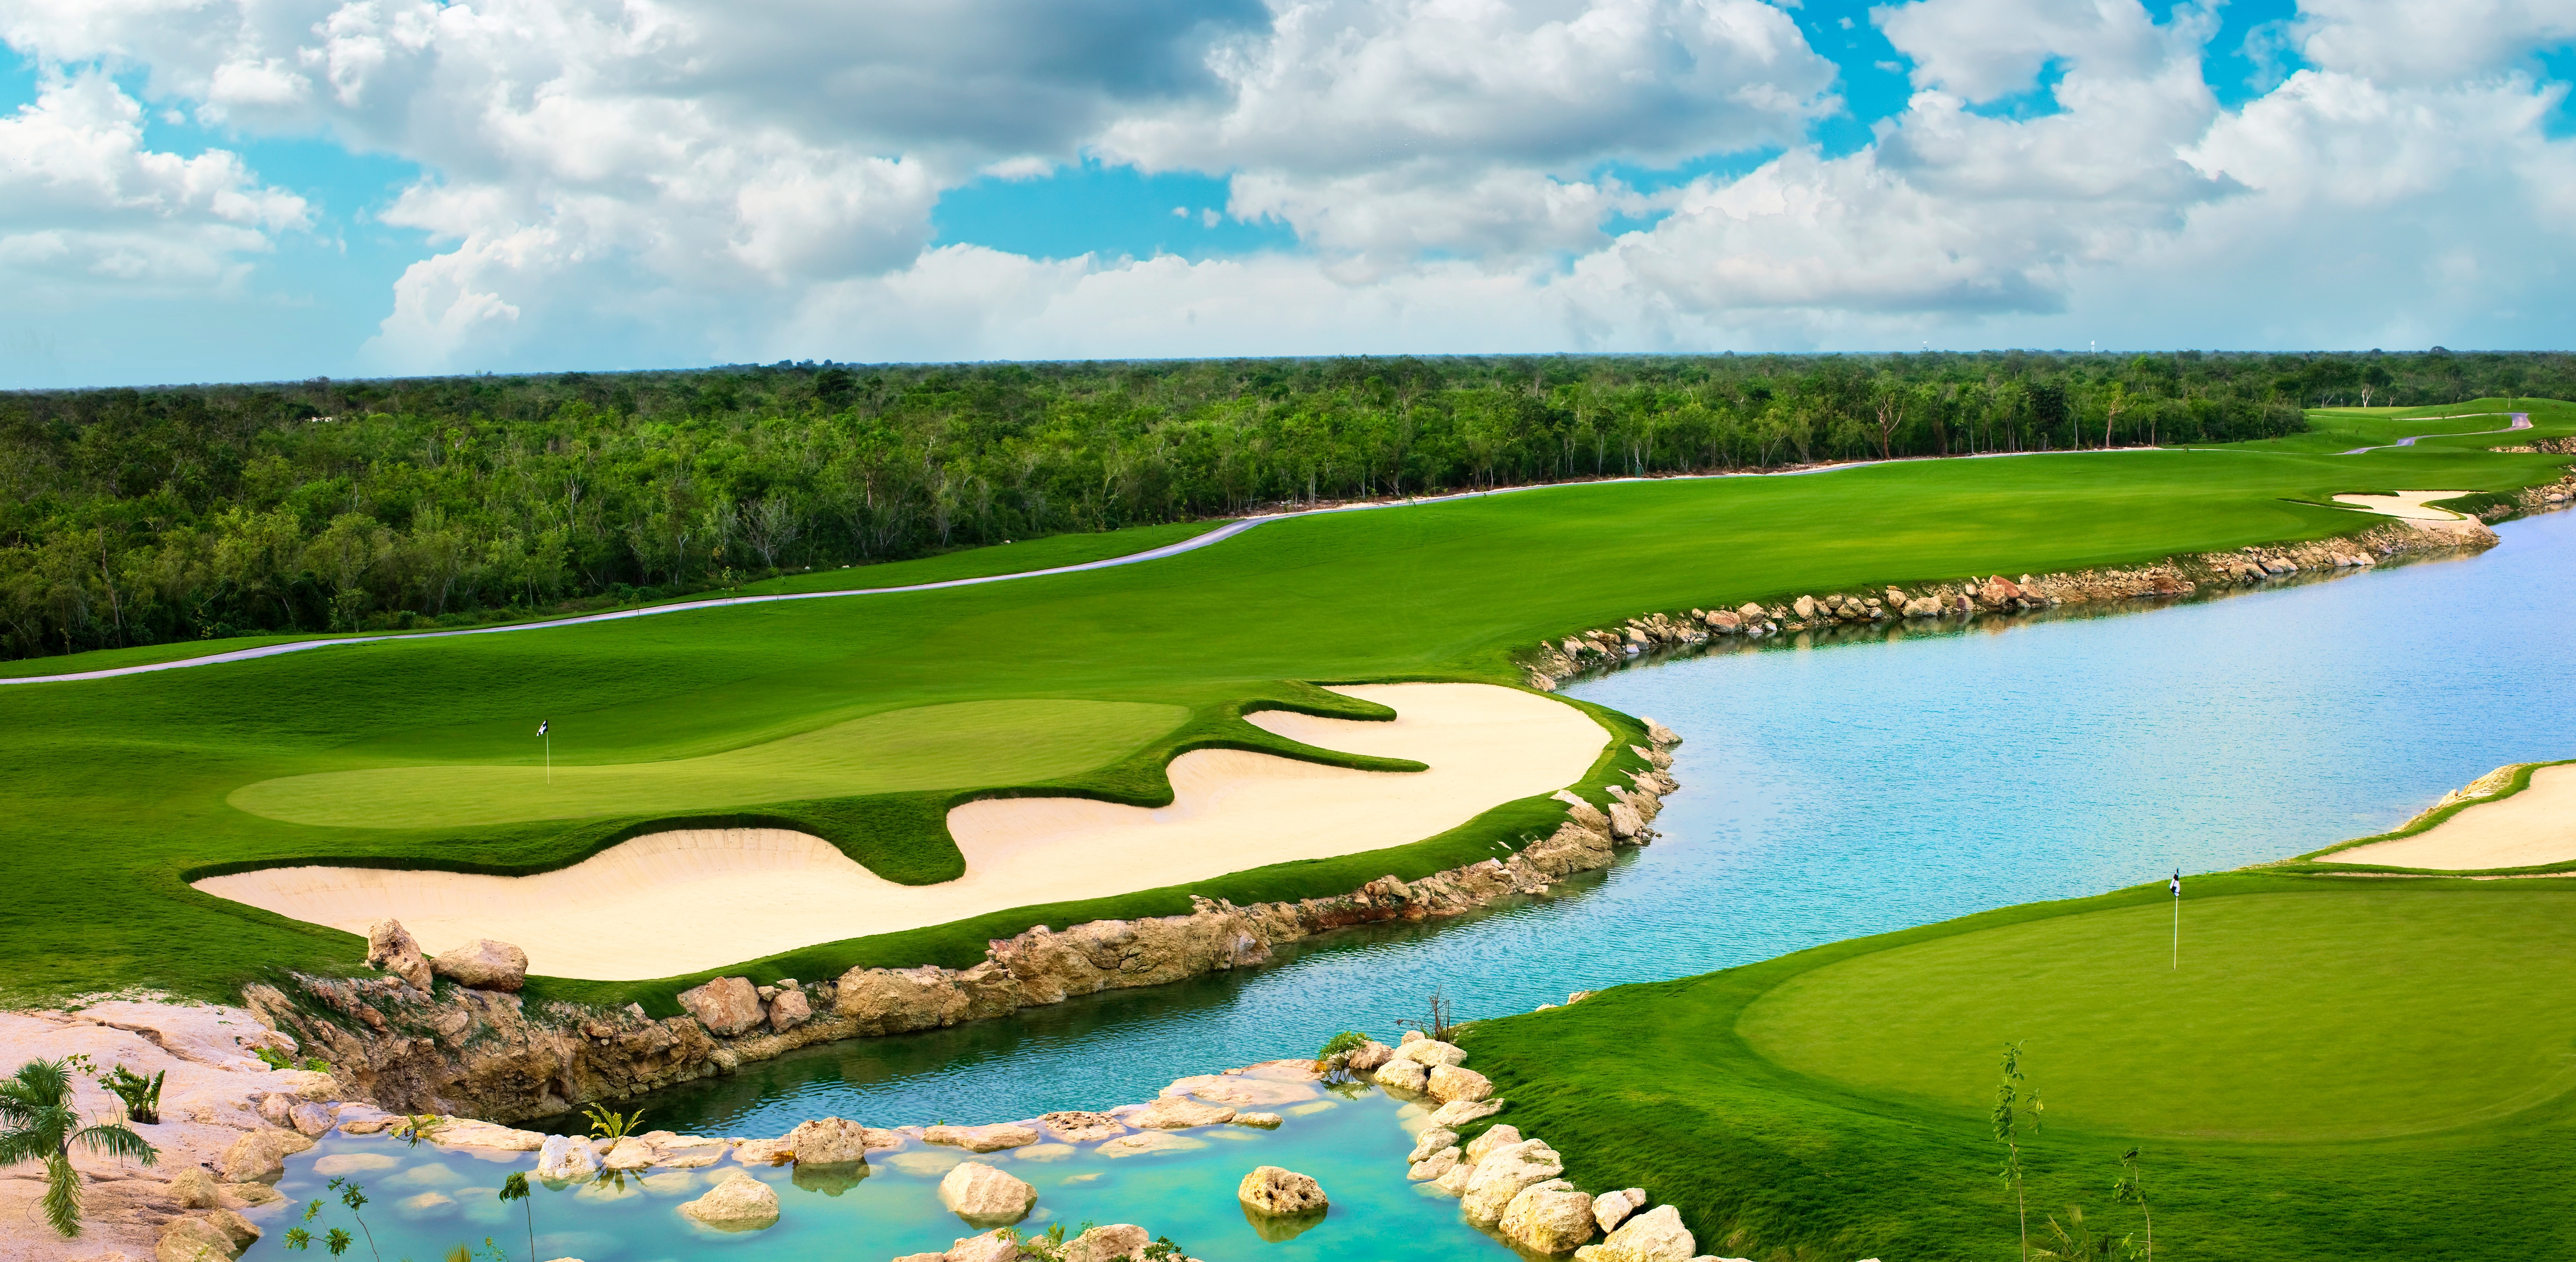 The jaguar golf course inside the Real state development, Yucatan Country Club.